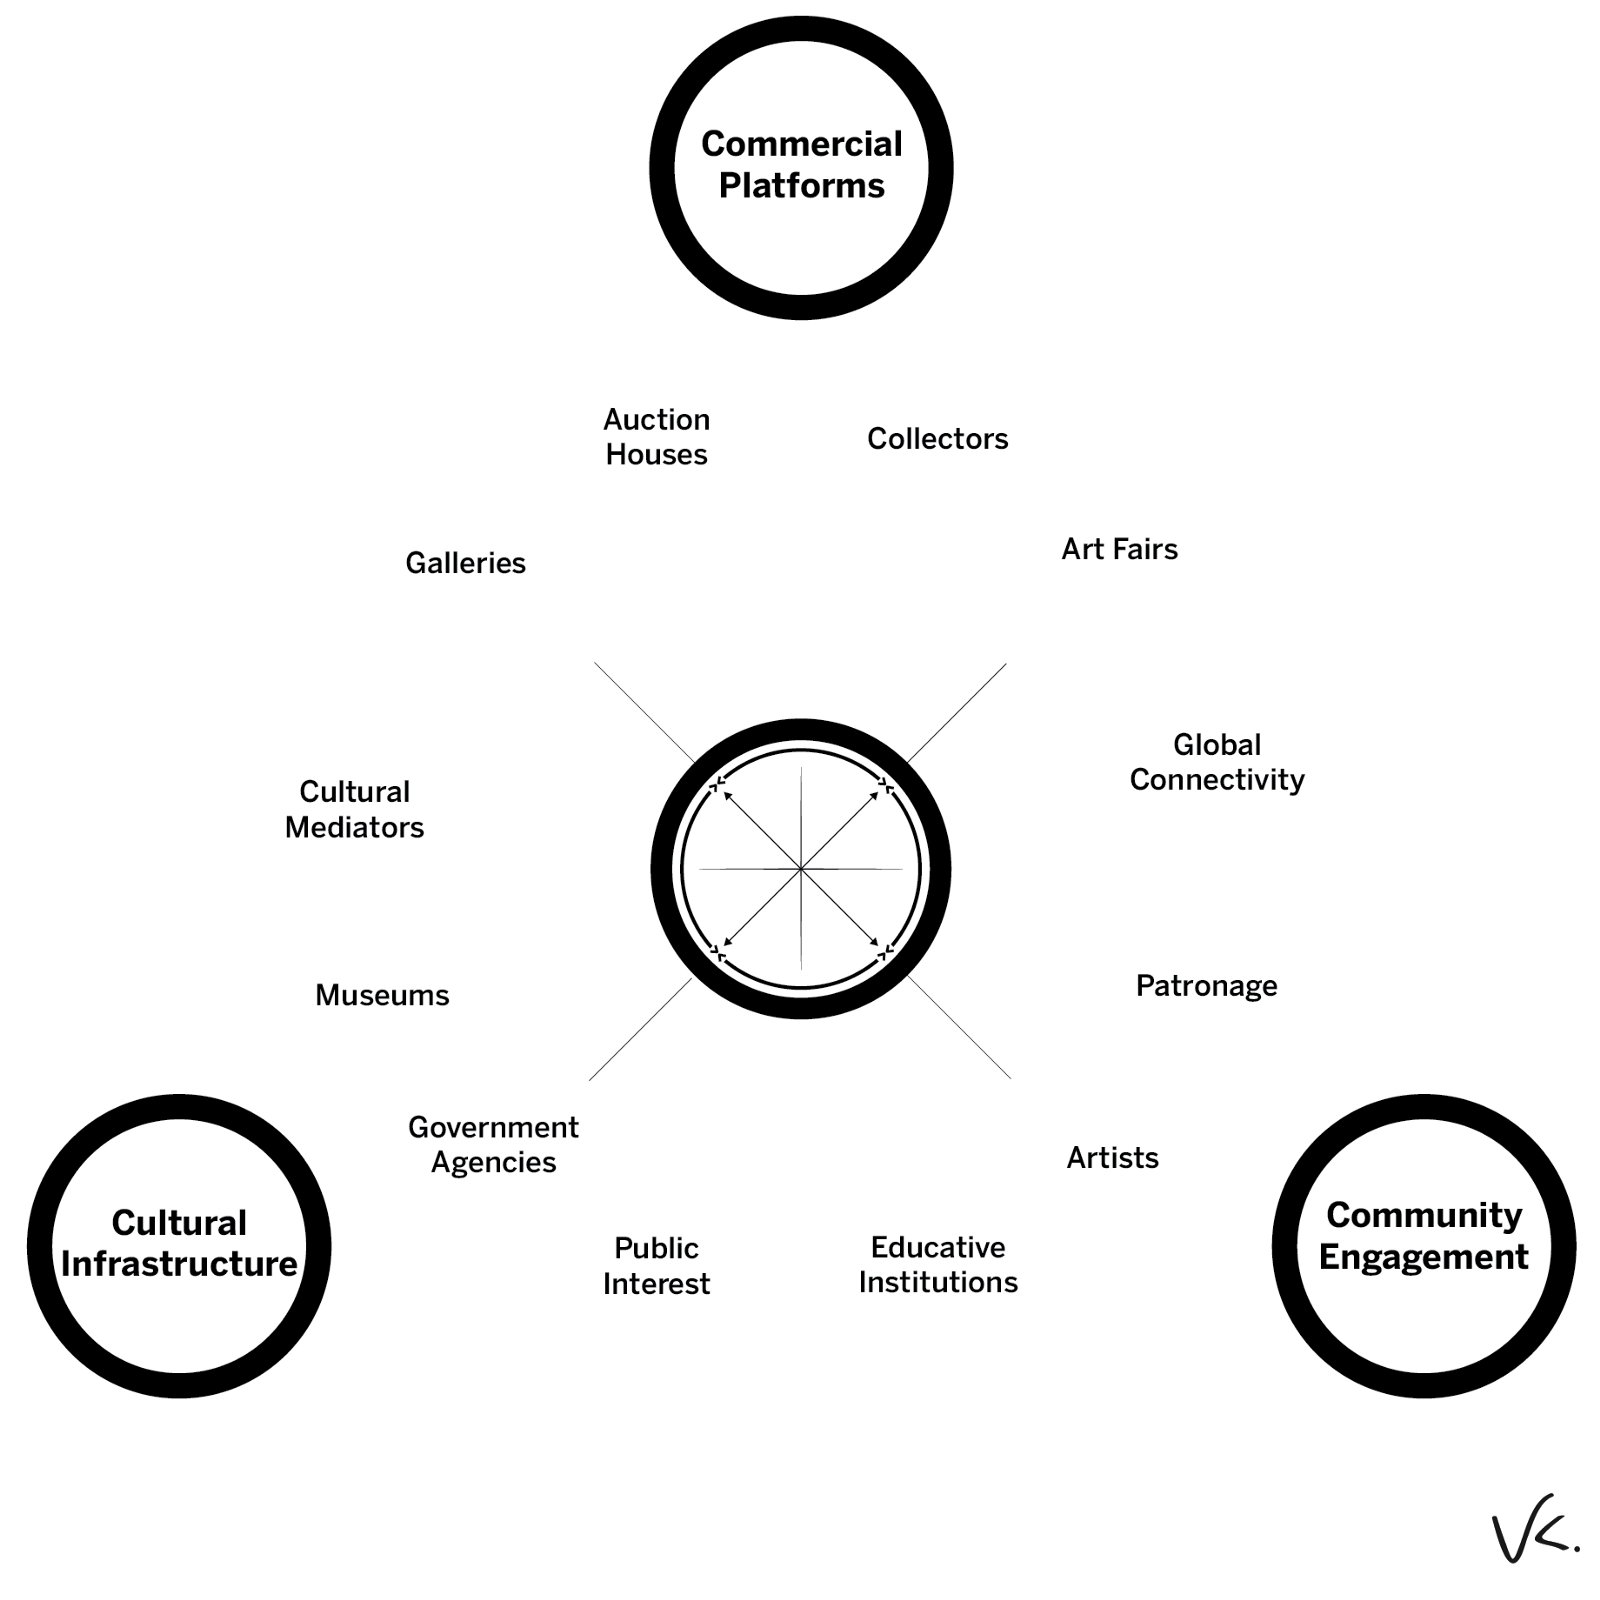 Understanding the art world ecosystem art marketing the three cs cultural infrastructure commercial platforms and community engagement lead to a healthy and fully functioning art market ecosystem pooptronica Image collections